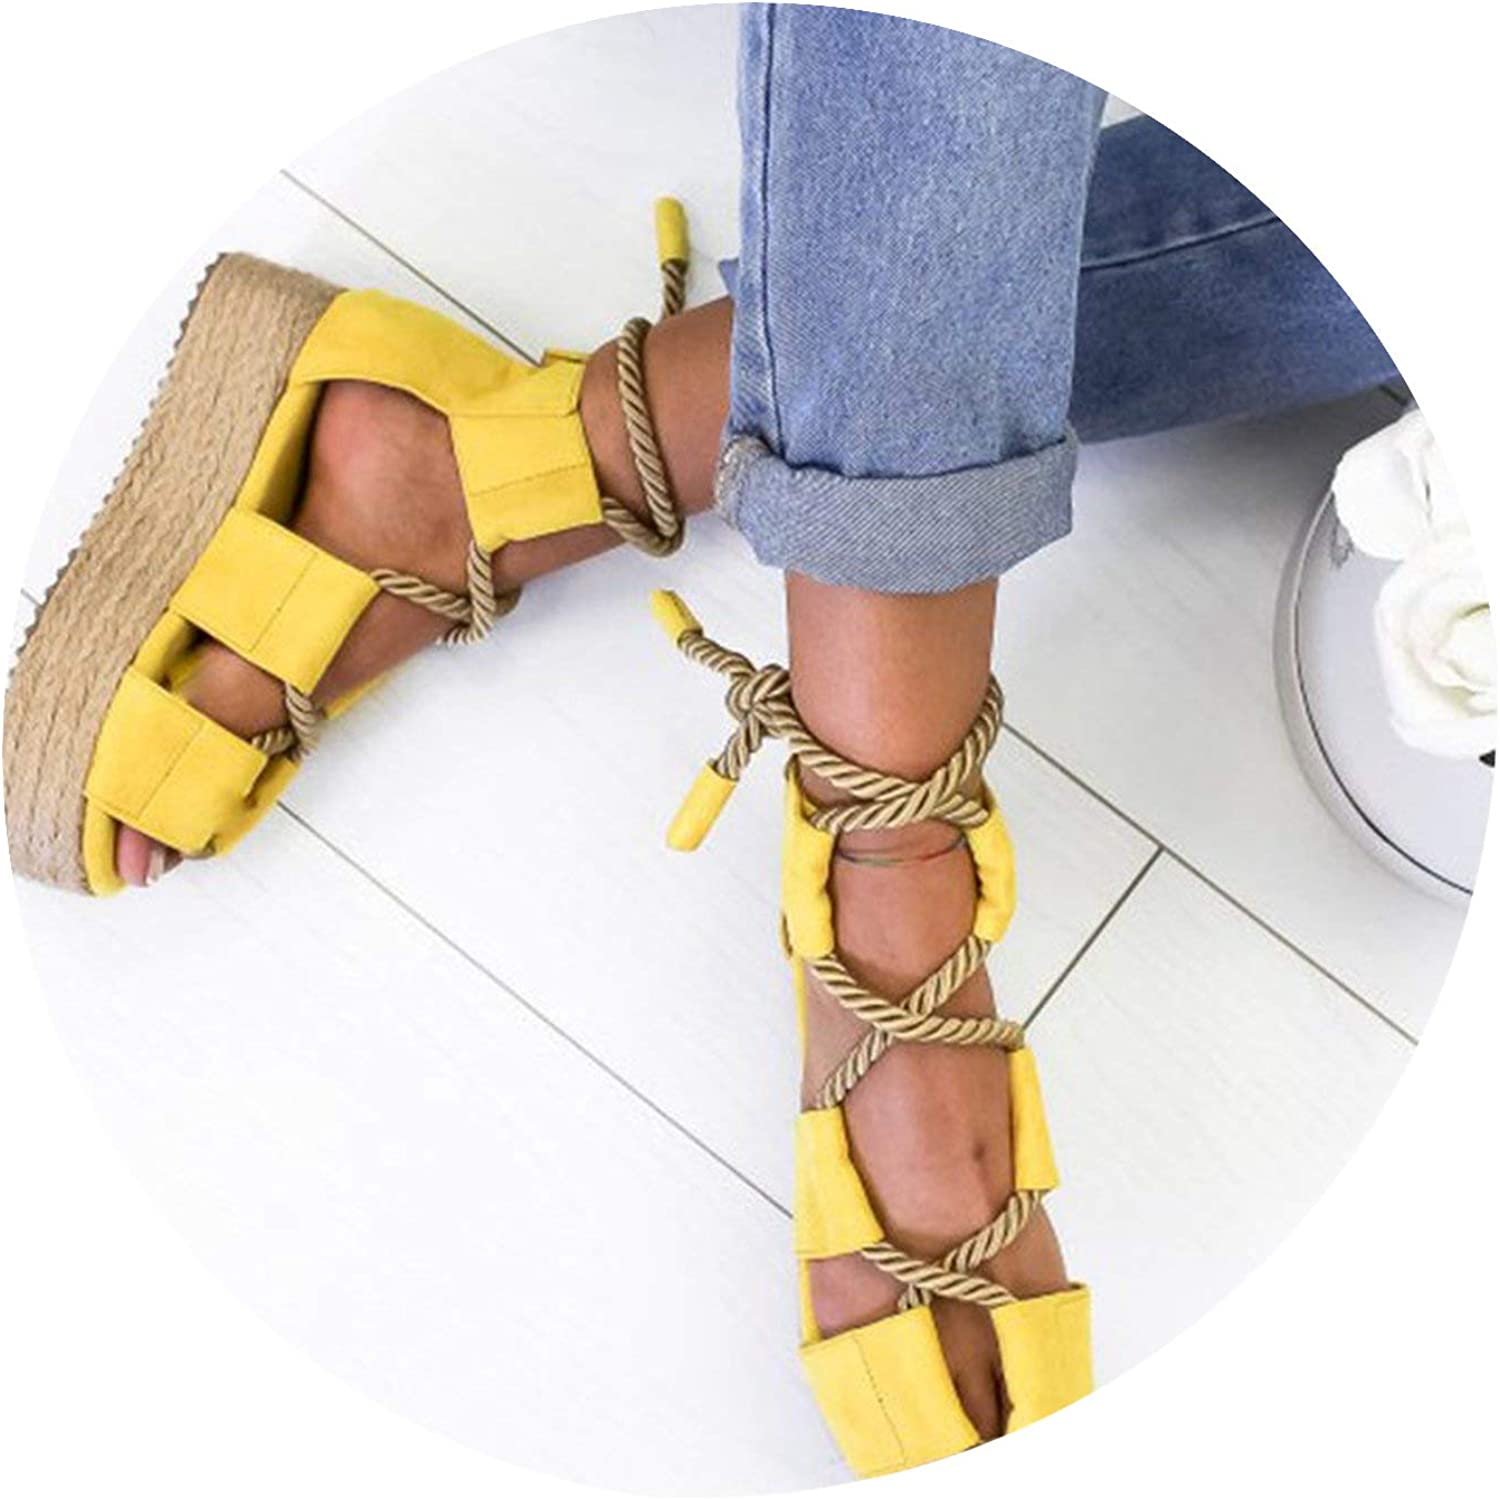 Summer Women Sandals Beach shoes Wedge shoes High Heel Comfortable Platform Sandals